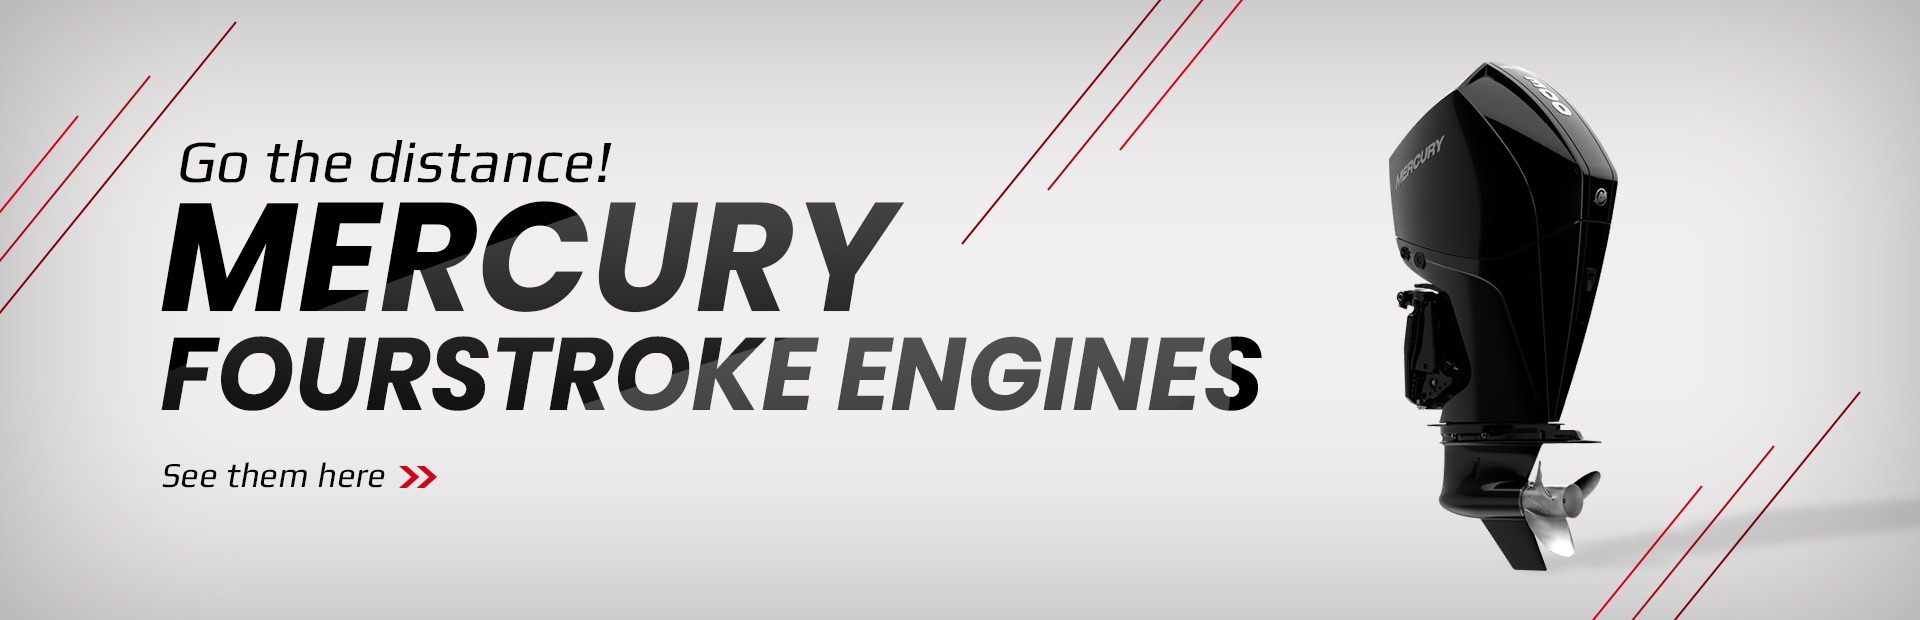 Mercury FourStroke Engines: Go the distance! Click here to view the models.